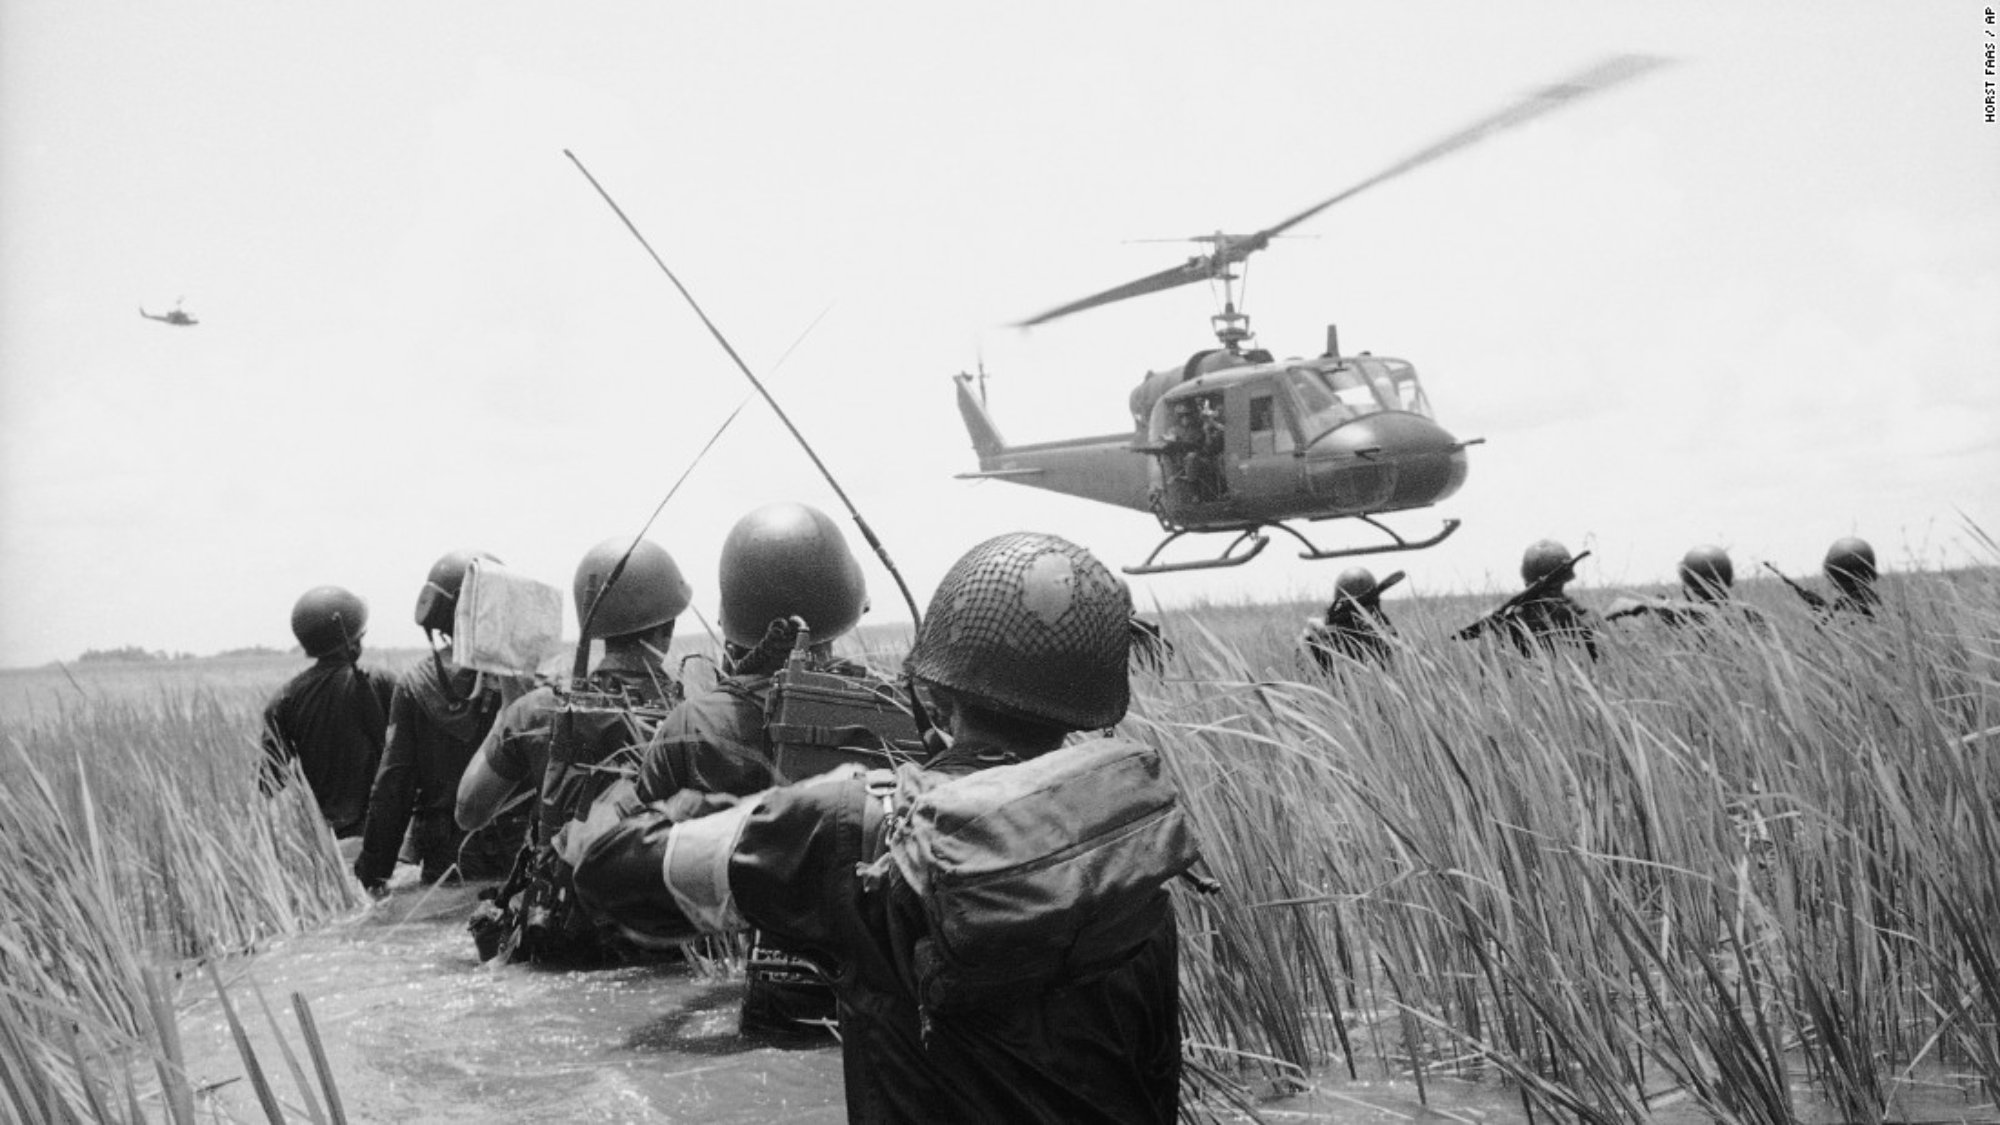 Innovation Lessons from the Vietnam War